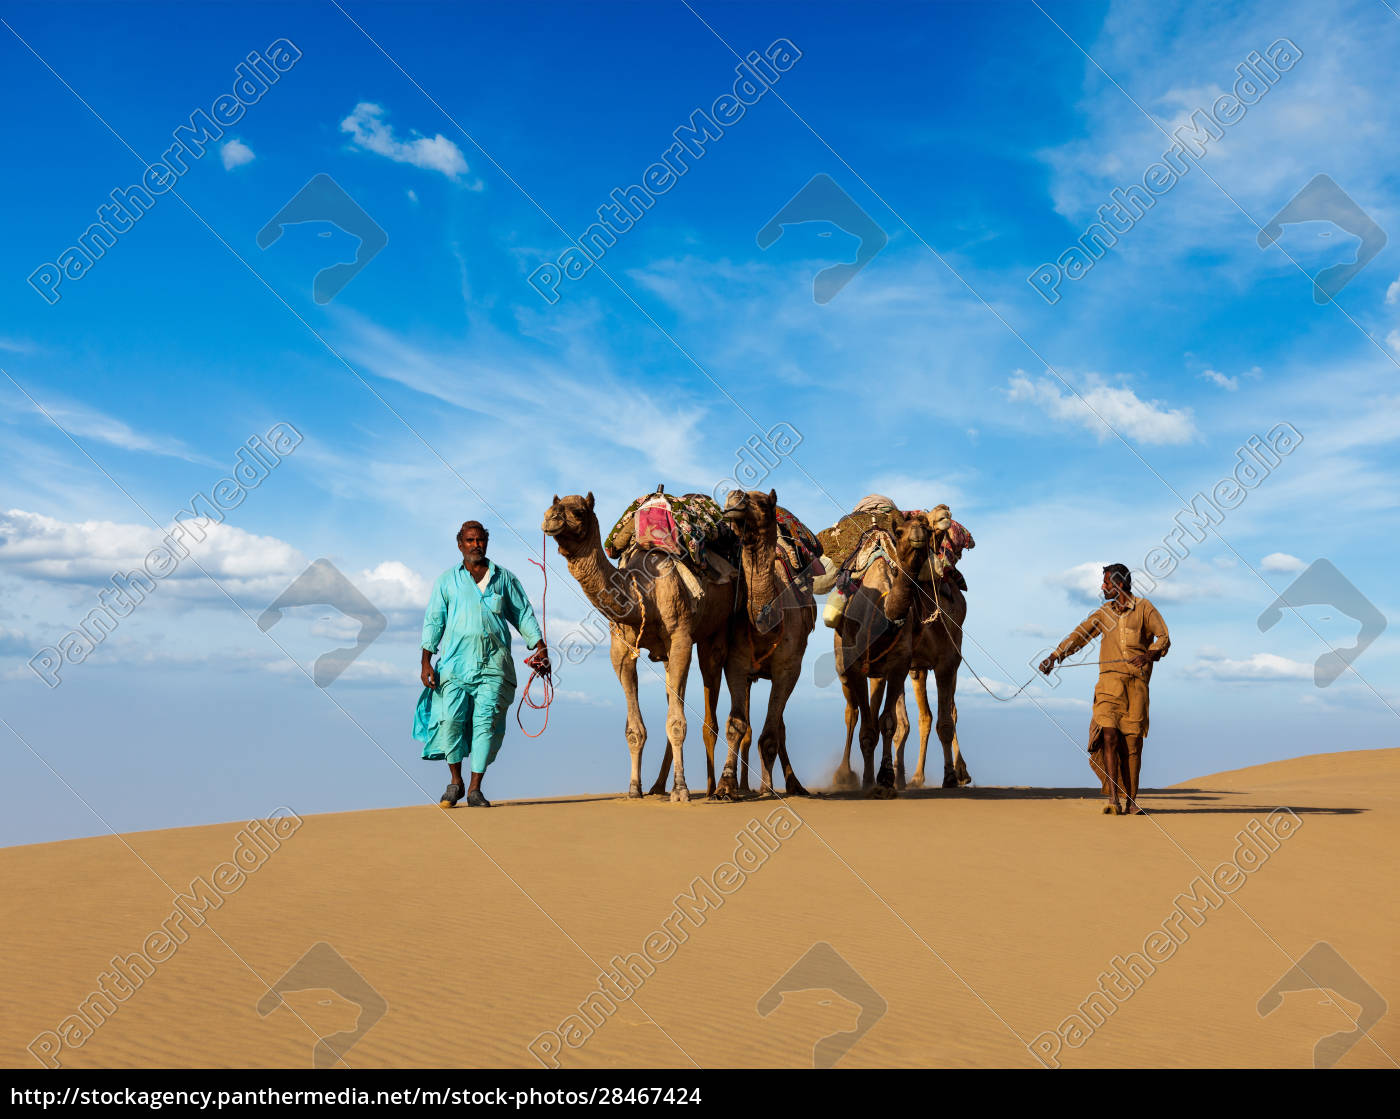 two, cameleers, (camel, drivers), with, camels - 28467424